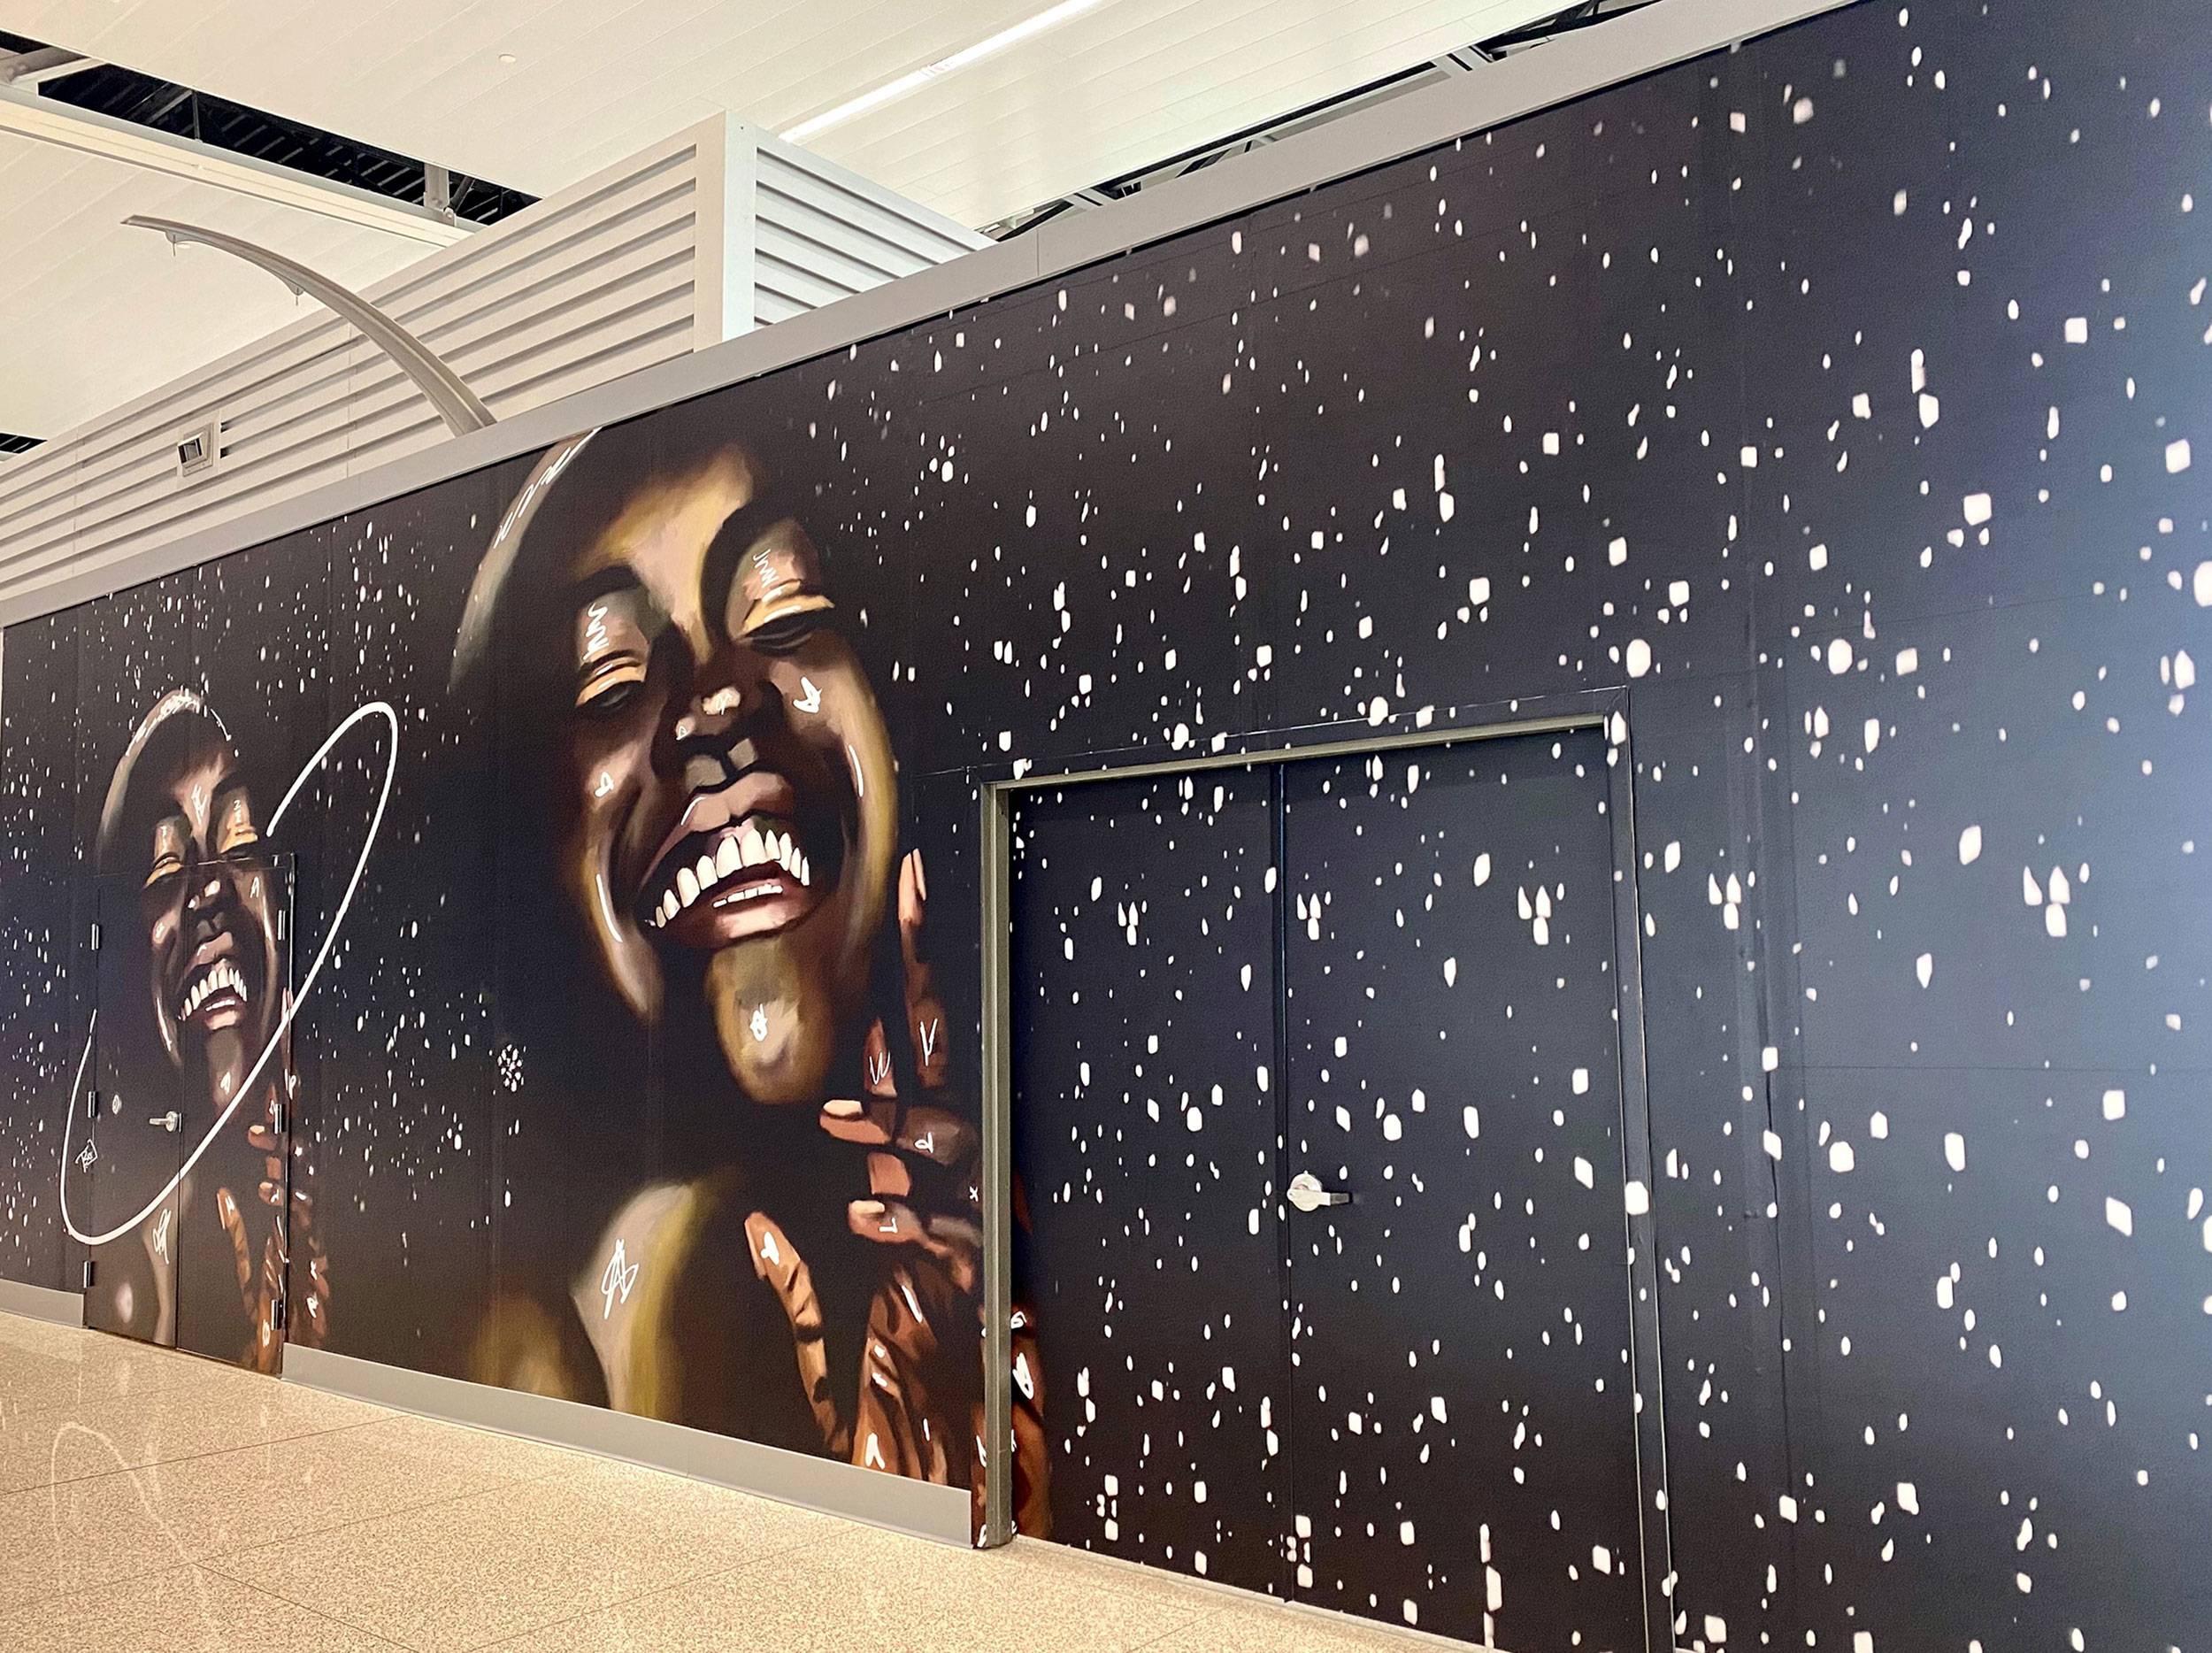 For the Swish project in Indianapolis, Repro Graphix digitally printed the work by local creatives like Boxx the Artist (right) and Tasha Beckwith (below), and installed it at the Indianapolis International Airport.